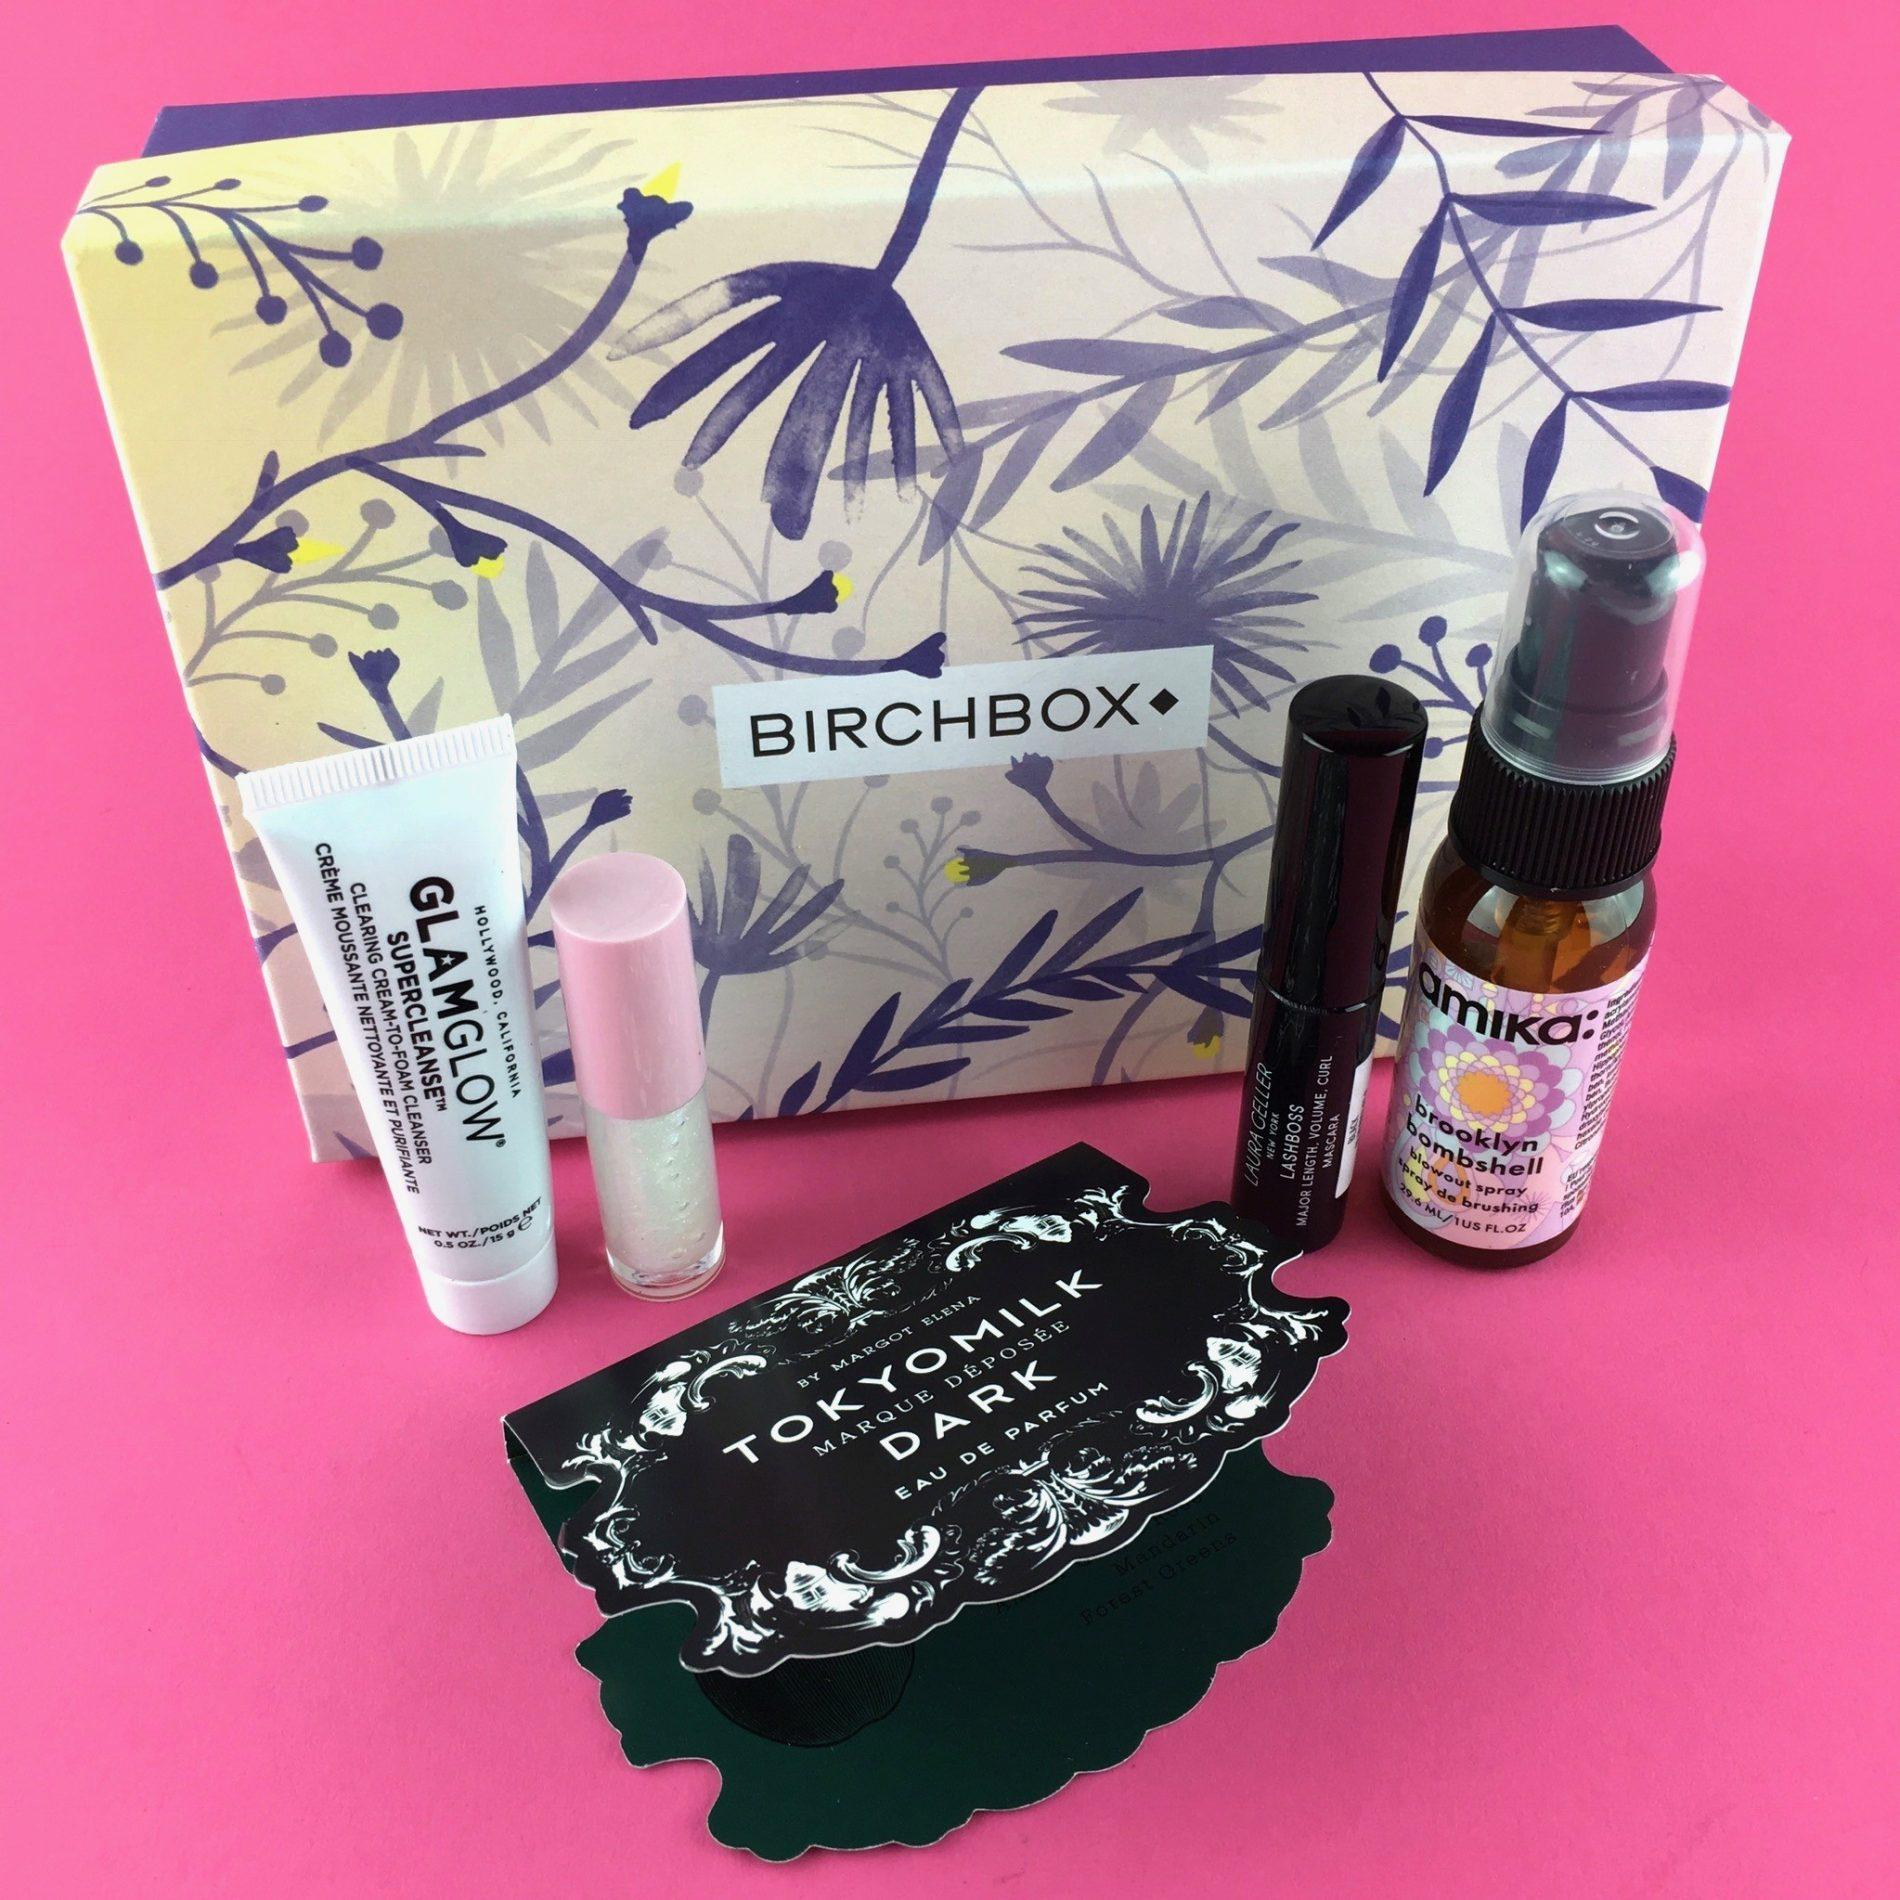 Apply the Birchbox Promo Code at check out to get the discount immediately. Don't forget to try all the Birchbox Promo Codes to get the biggest discount. To give the most up-to-date Birchbox Promo Codes, our dedicated editors put great effort to update the discount .